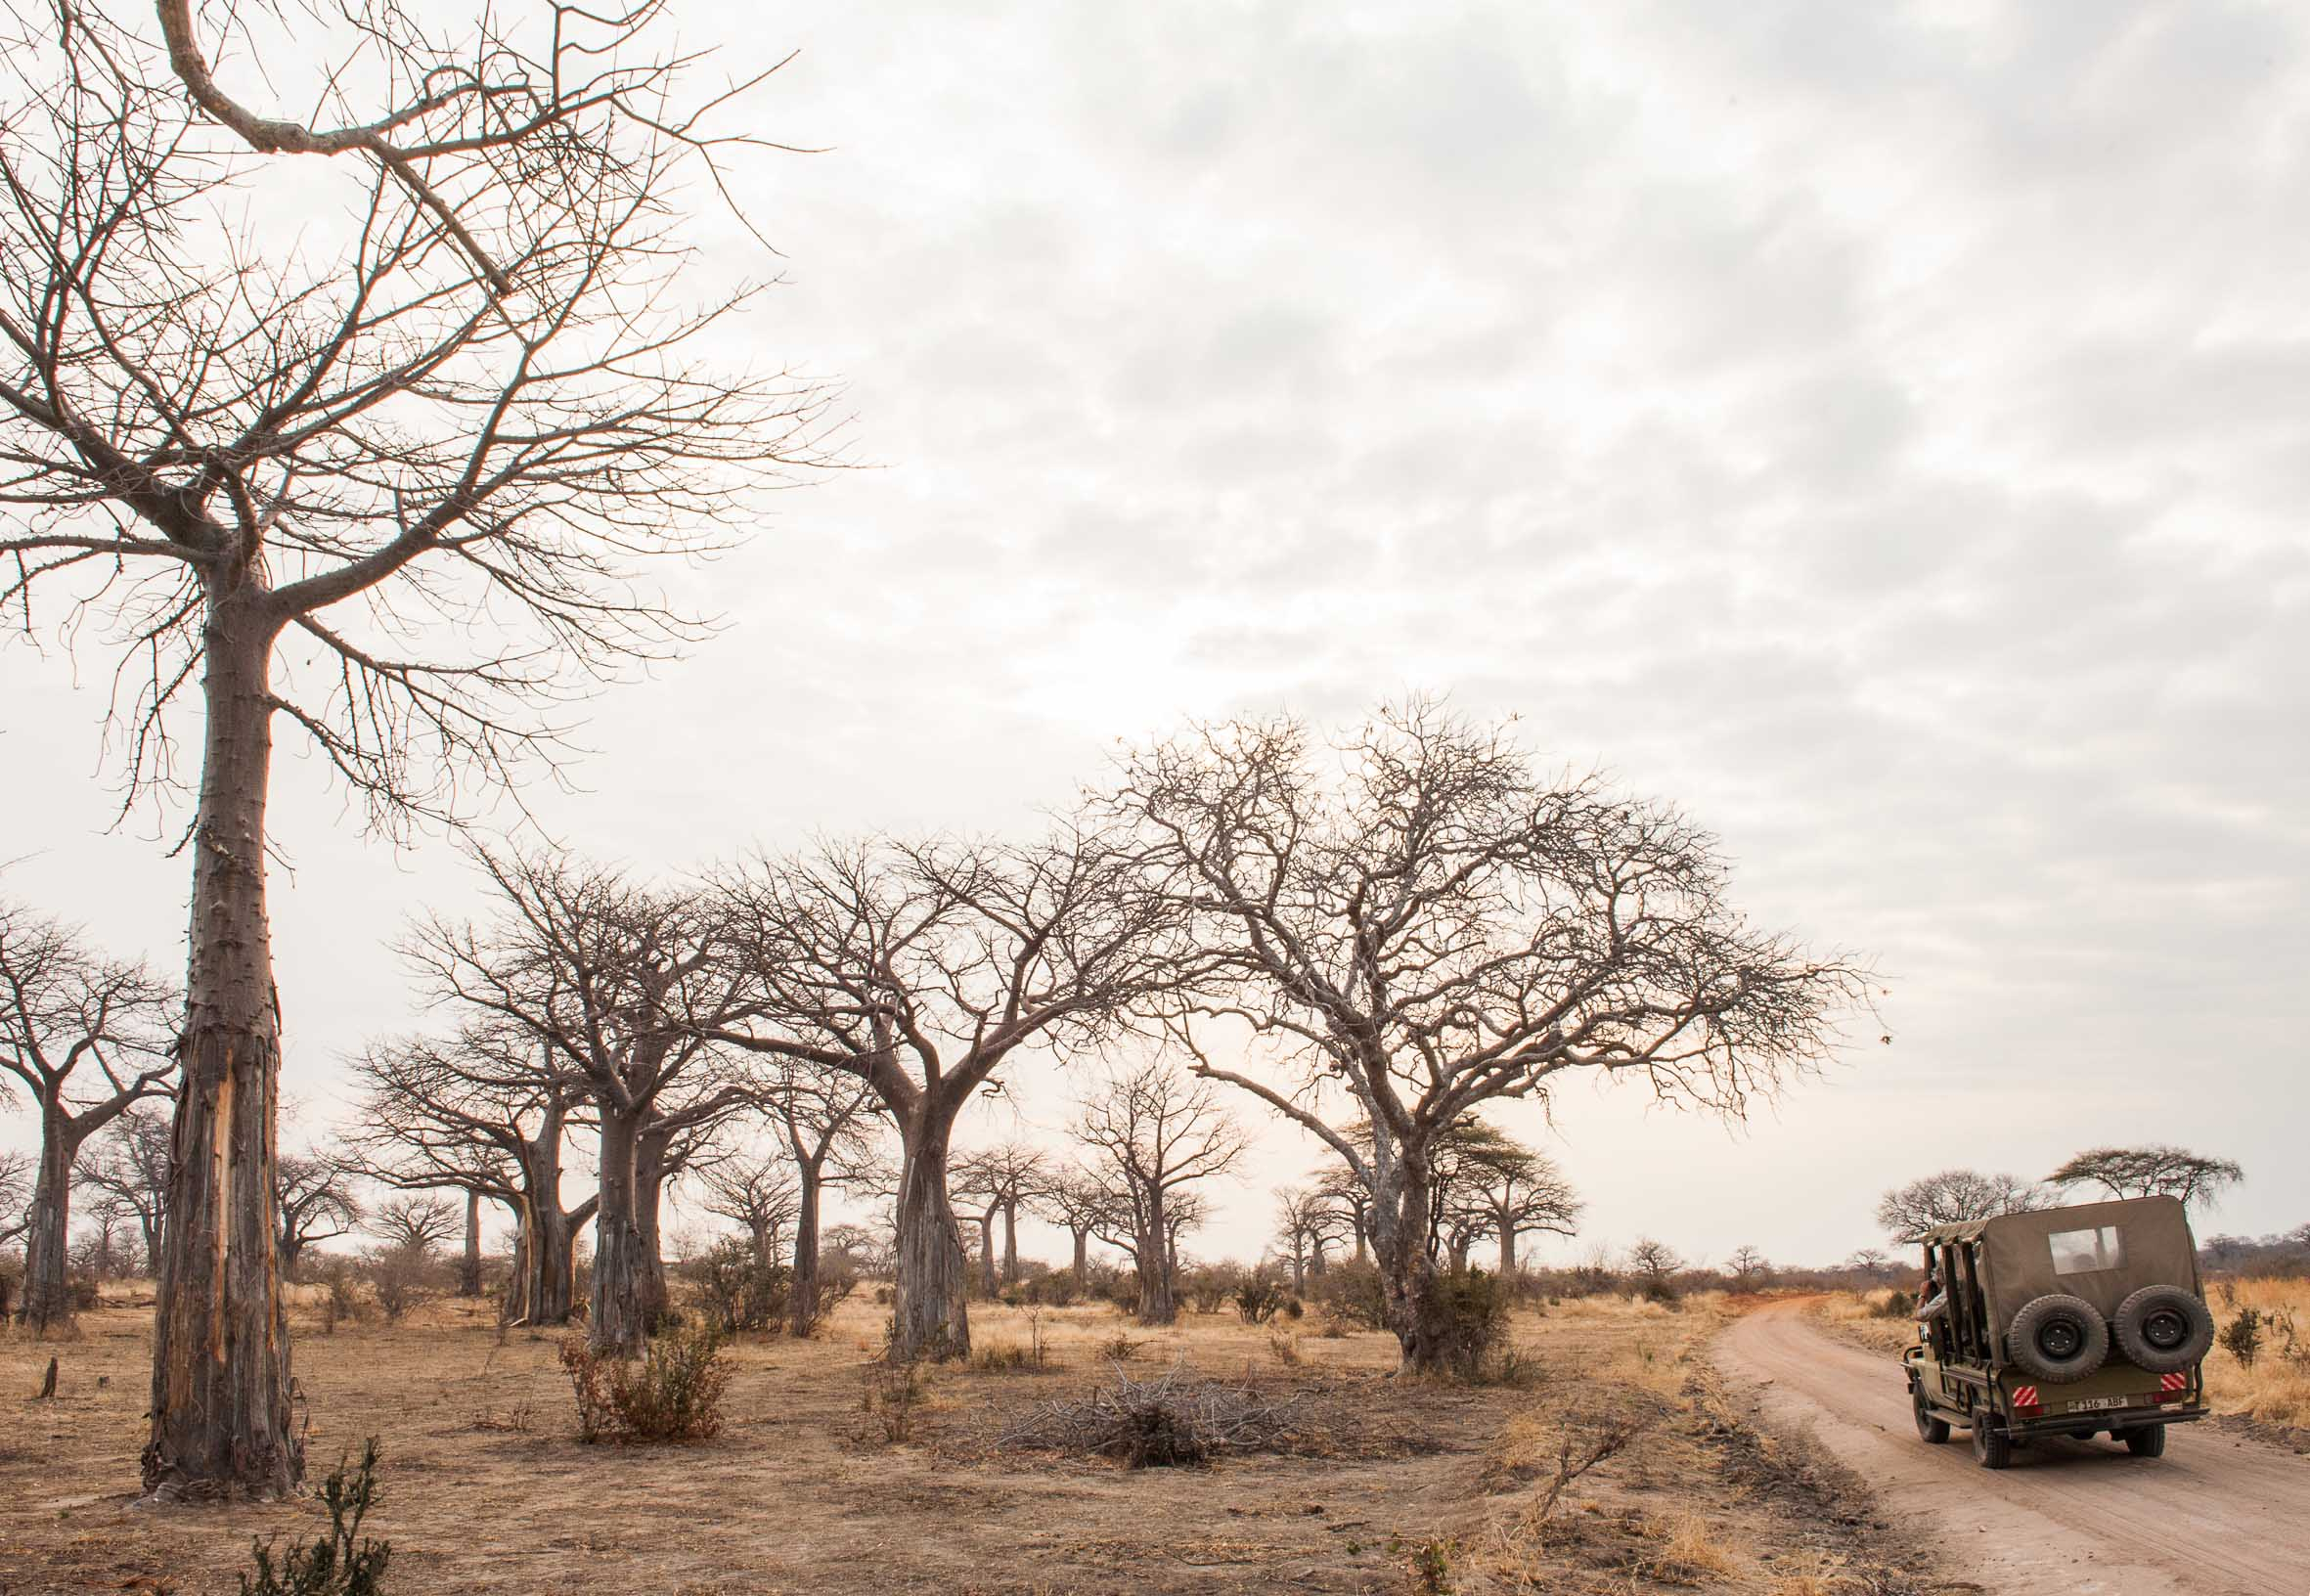 Kwihala-Camp-Game-Drive-Views-Baobab-Paul-Joynson-Hicks-LR.jpg